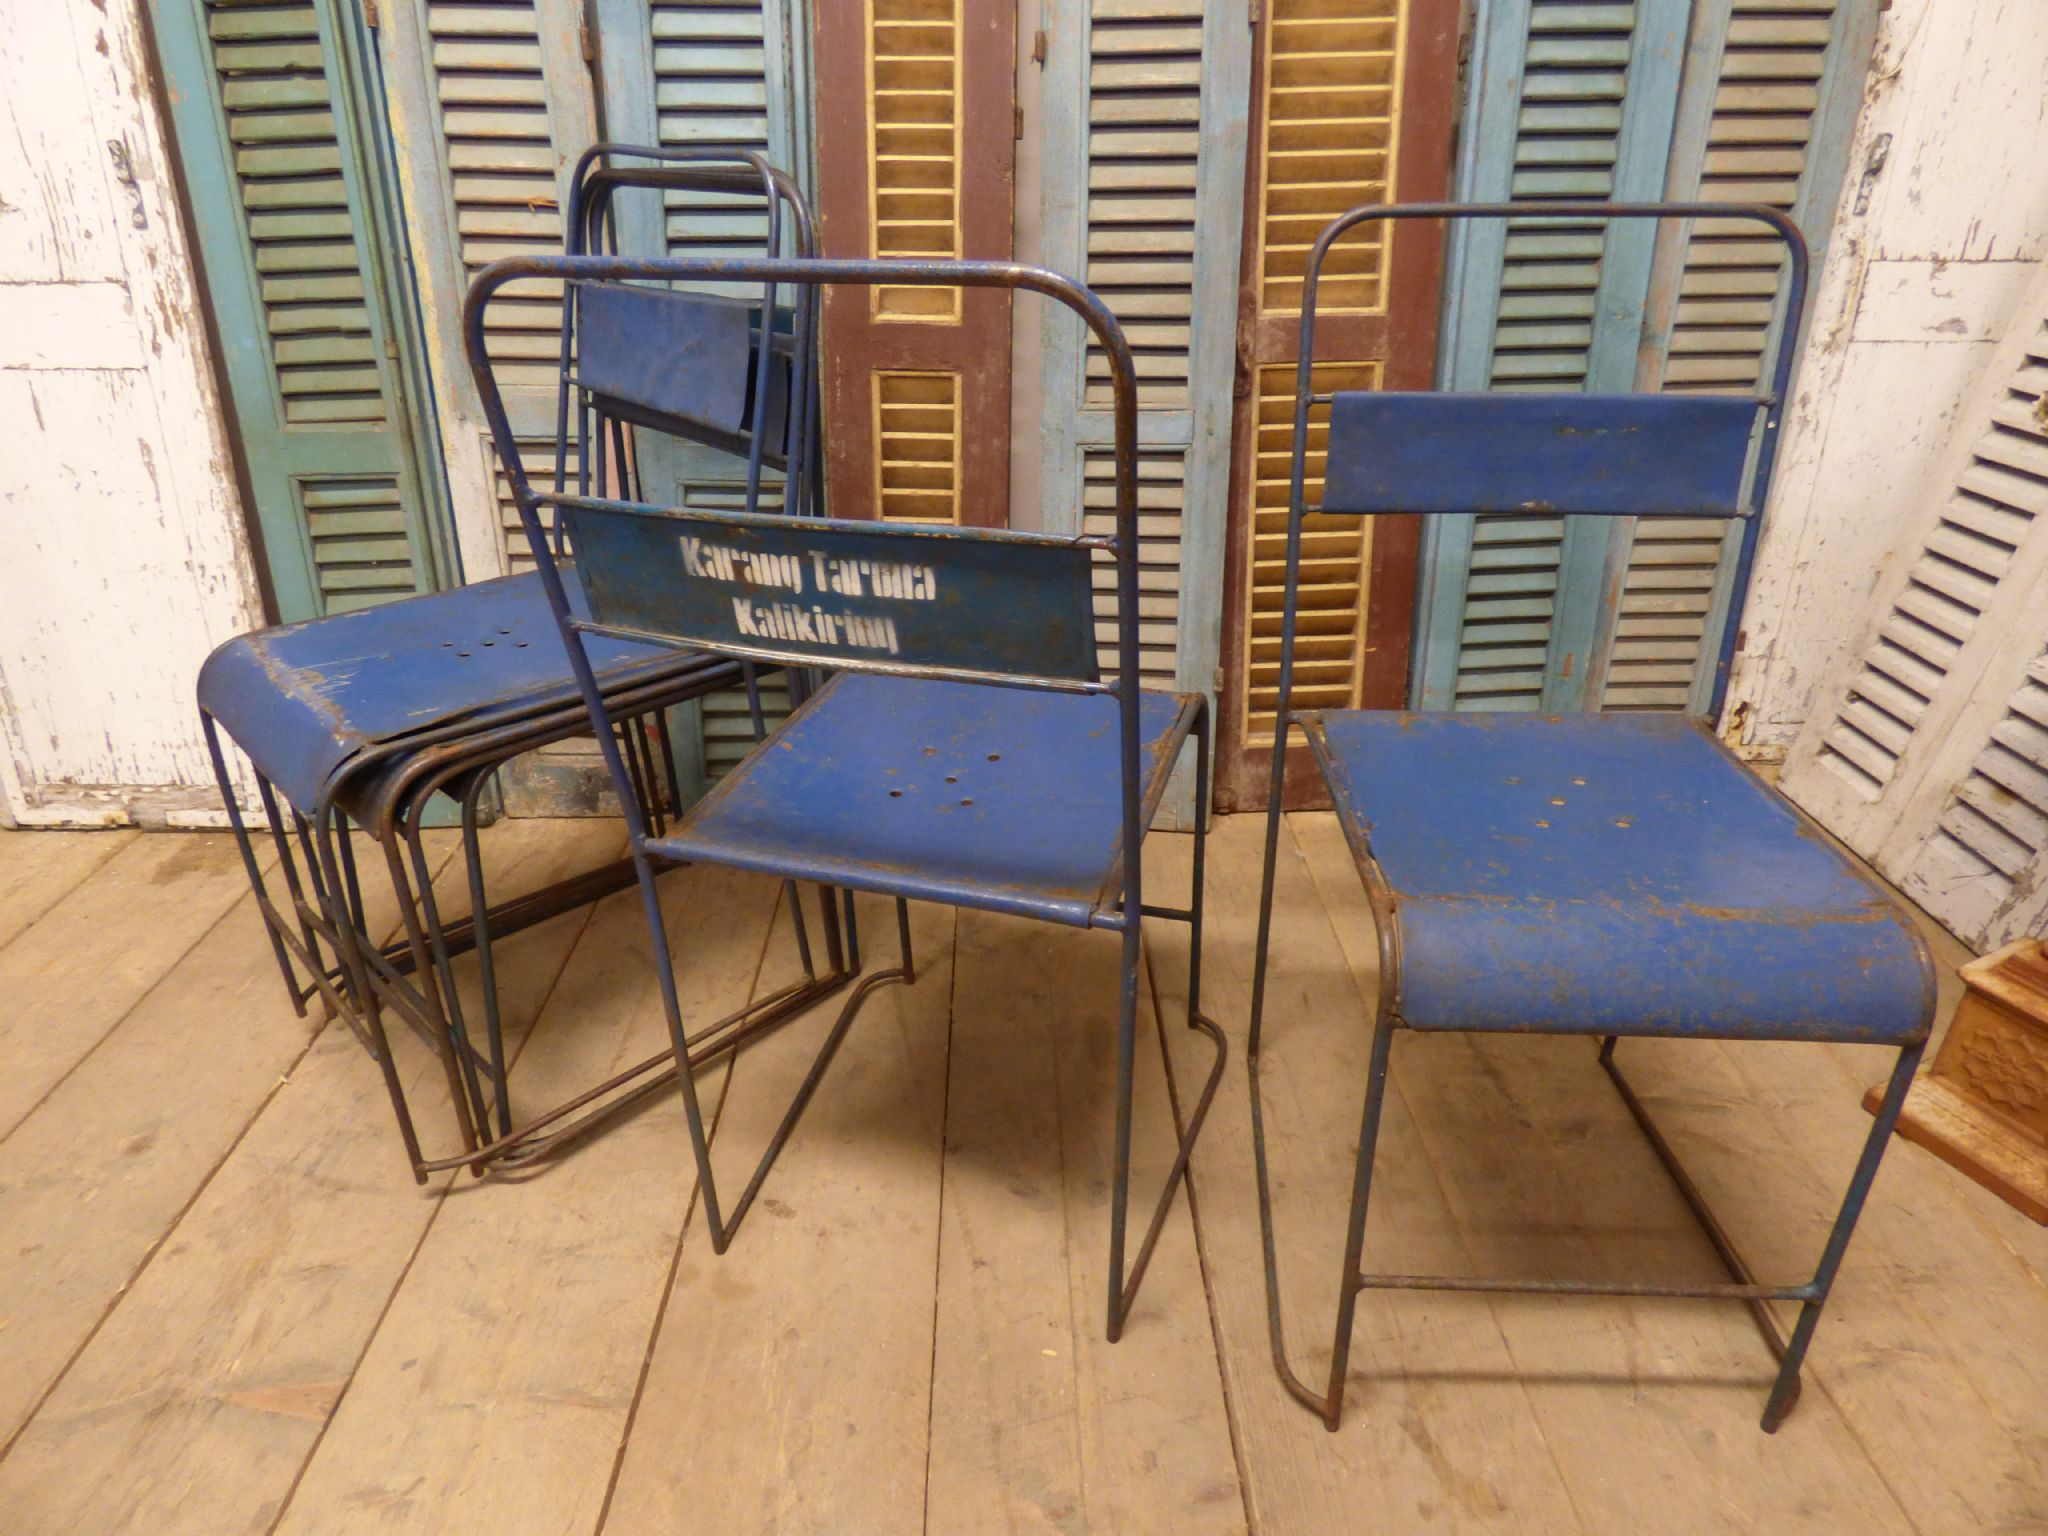 Delightful Vintage Industrial Metal Chairs